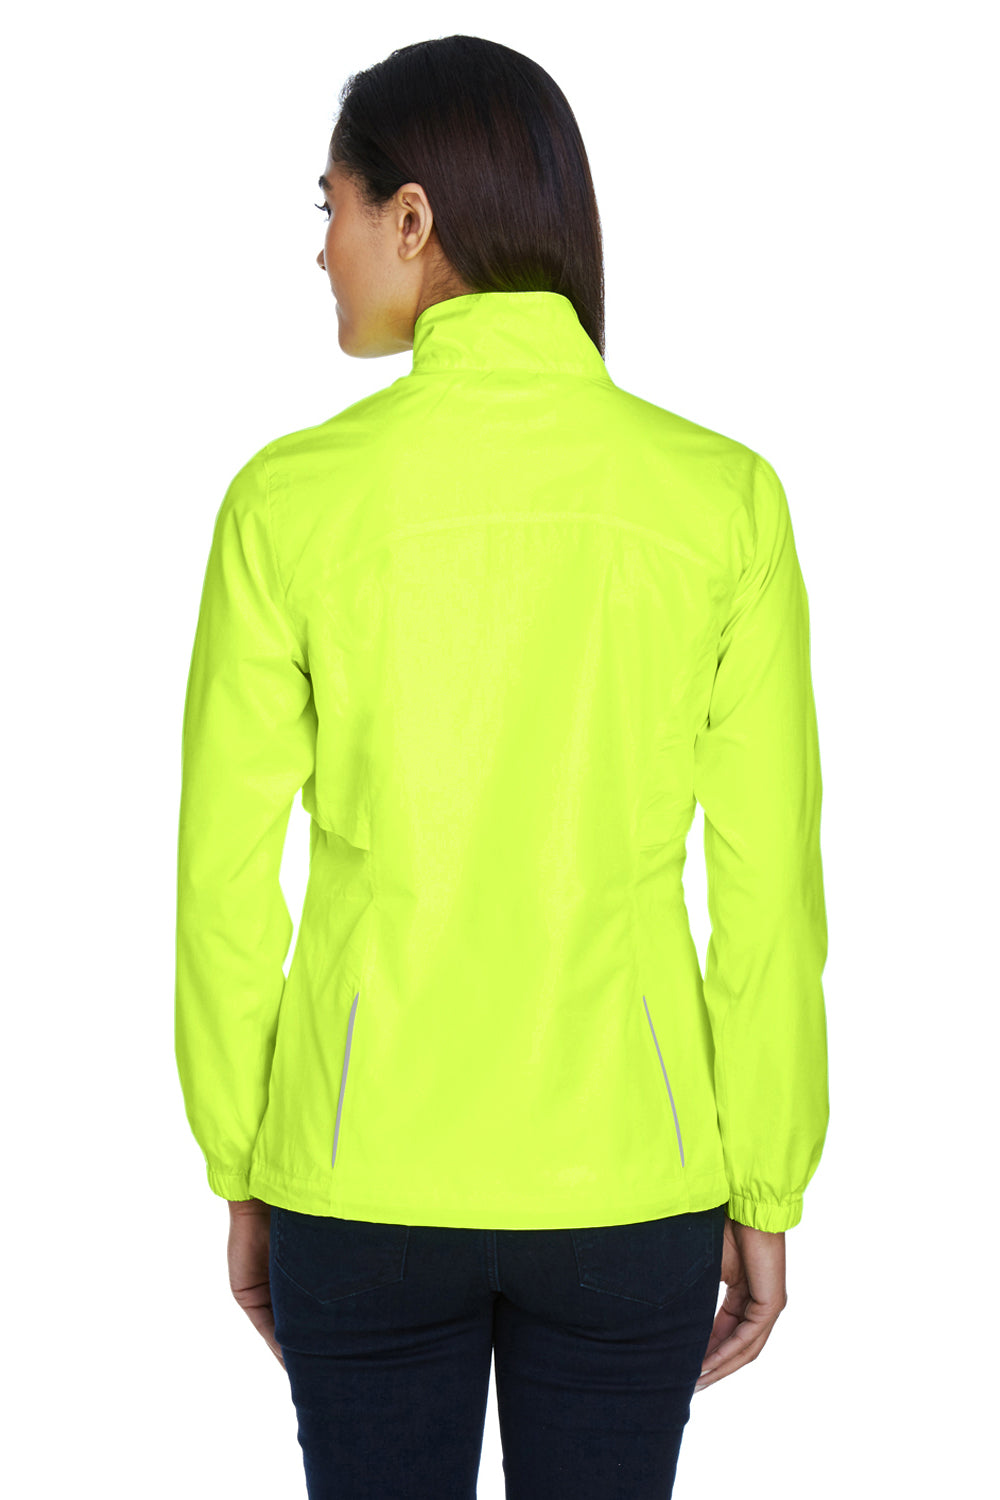 Core 365 78183 Womens Motivate Water Resistant Full Zip Jacket Safety Yellow Back